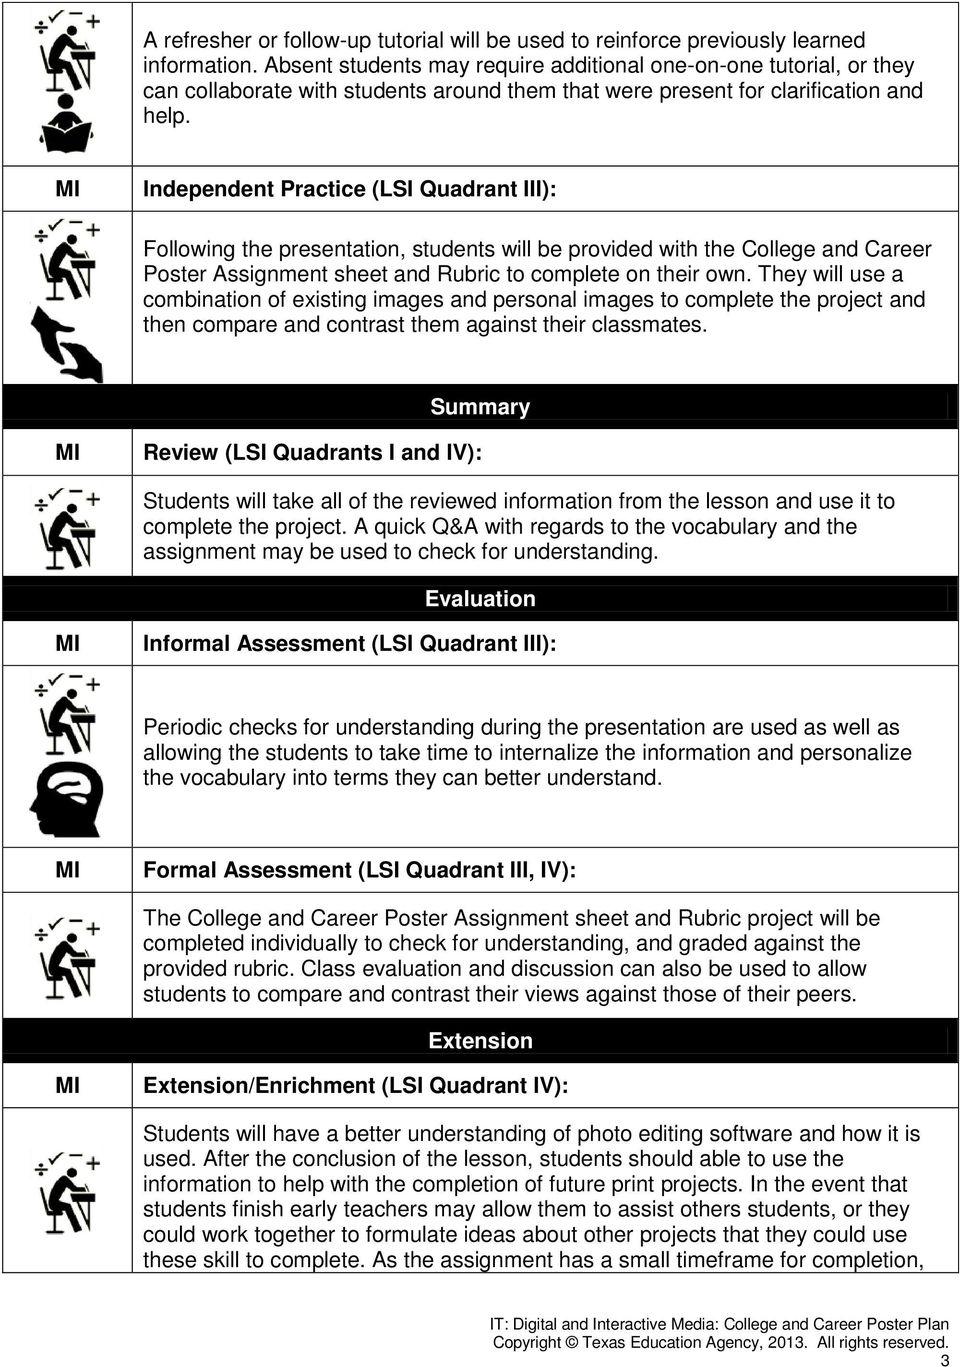 Independent Practice (LSI Quadrant III): Following the presentation, students will be provided with the College and Career Poster Assignment sheet and Rubric to complete on their own.